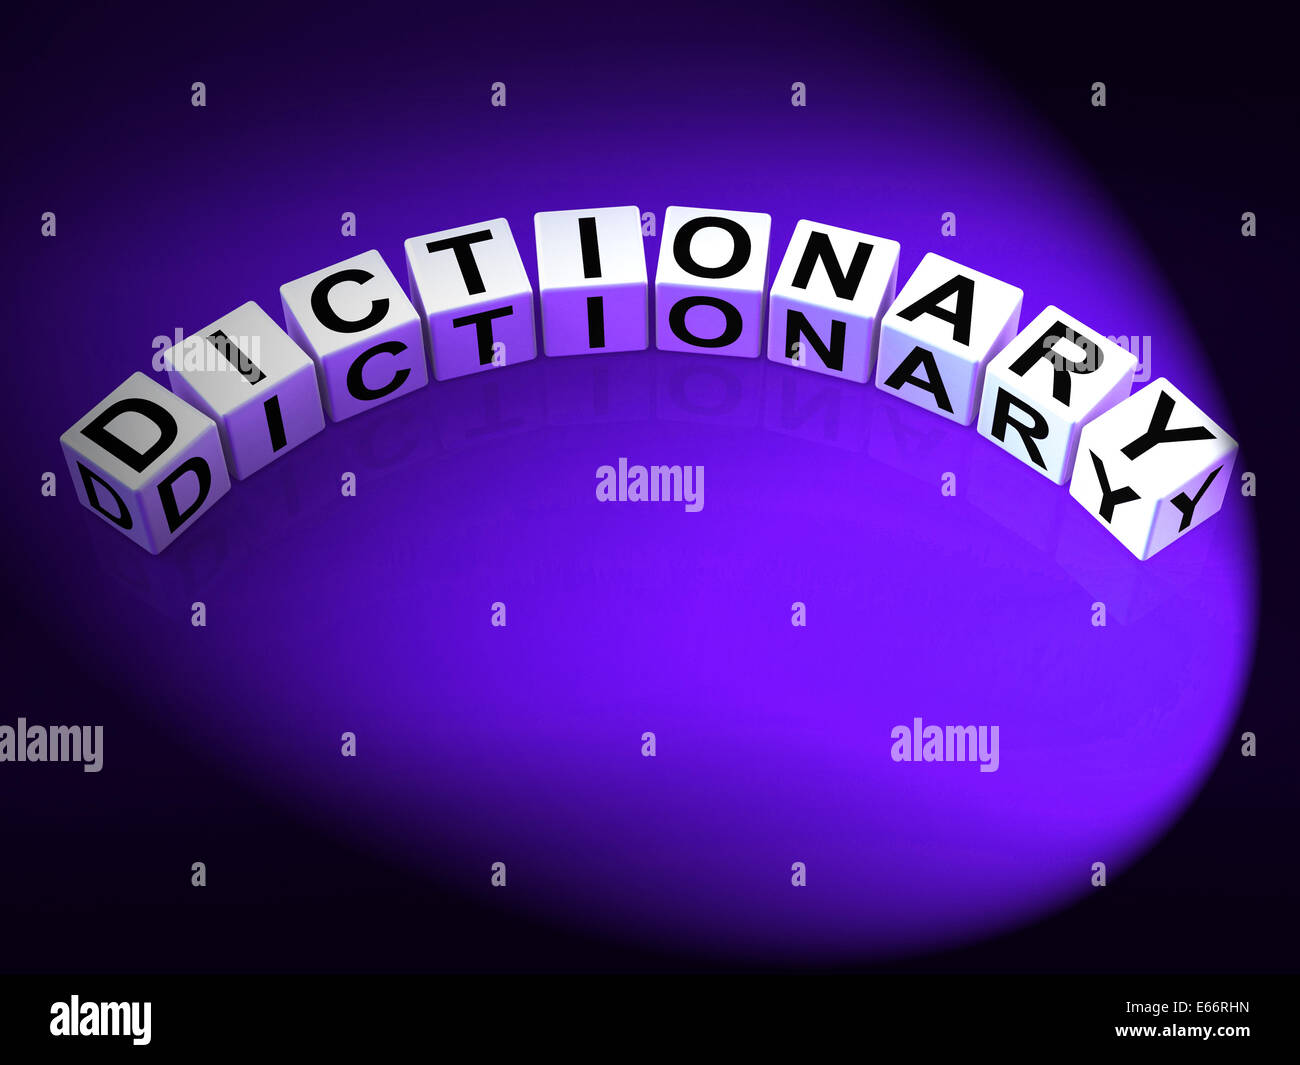 Dictionary letters meaning meanings of words and reference stock dictionary letters meaning meanings of words and reference spiritdancerdesigns Image collections